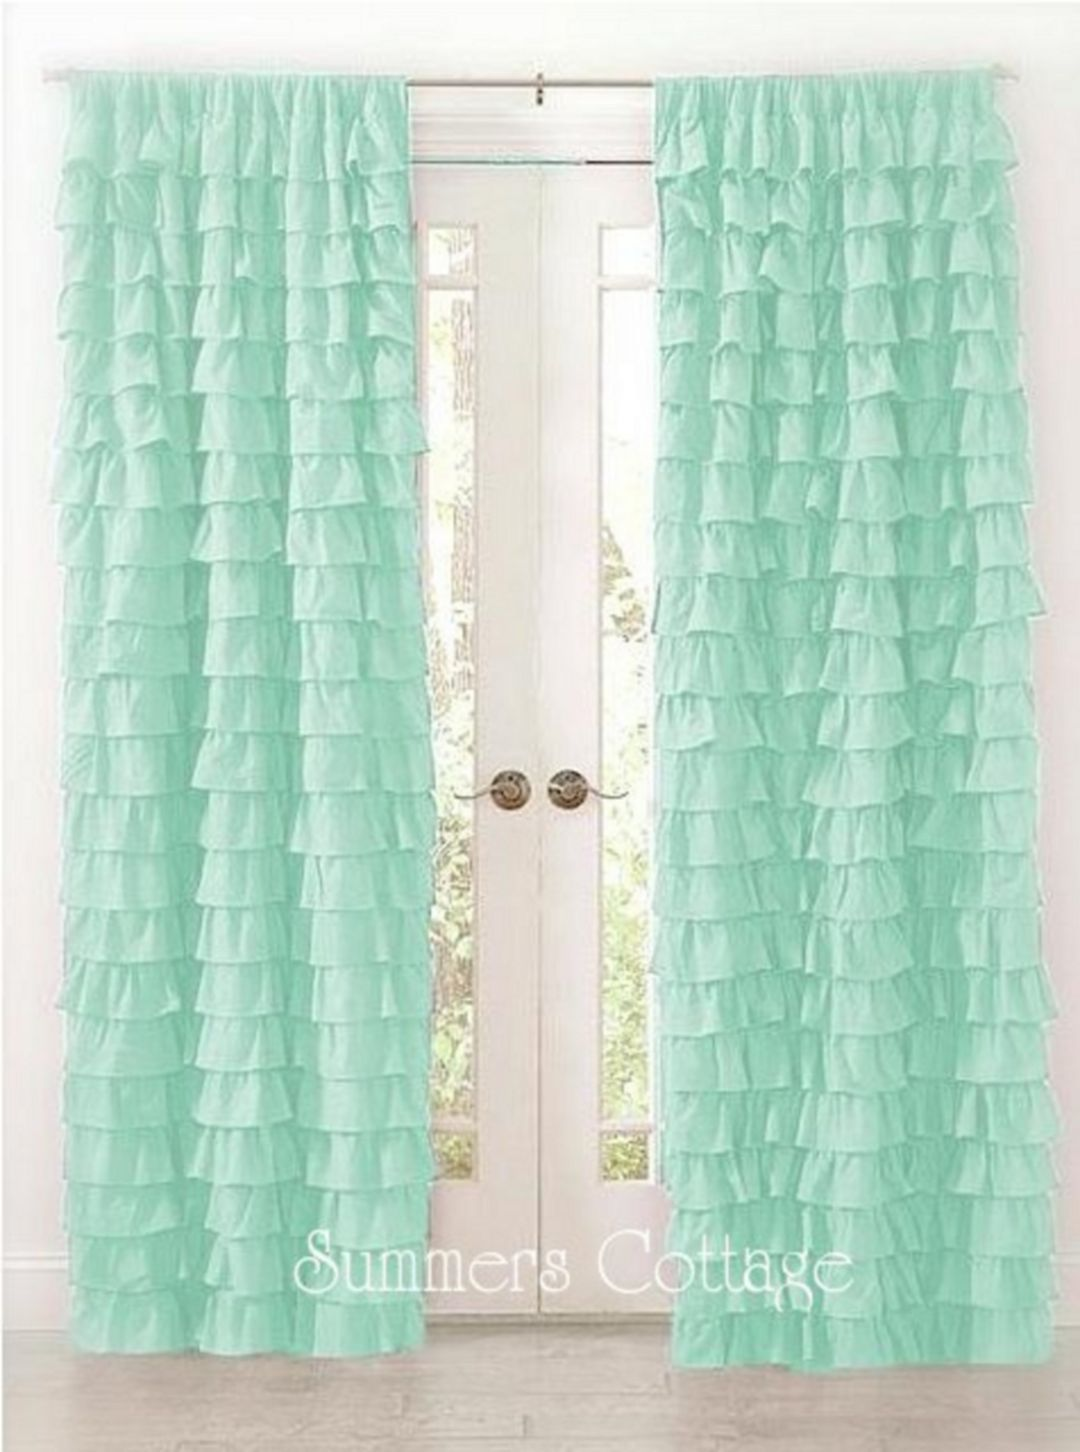 Kids Bedroom Curtains Amusing 88 Cute Bedroom Curtain Design Ideas For Your Kids  Curtain Inspiration